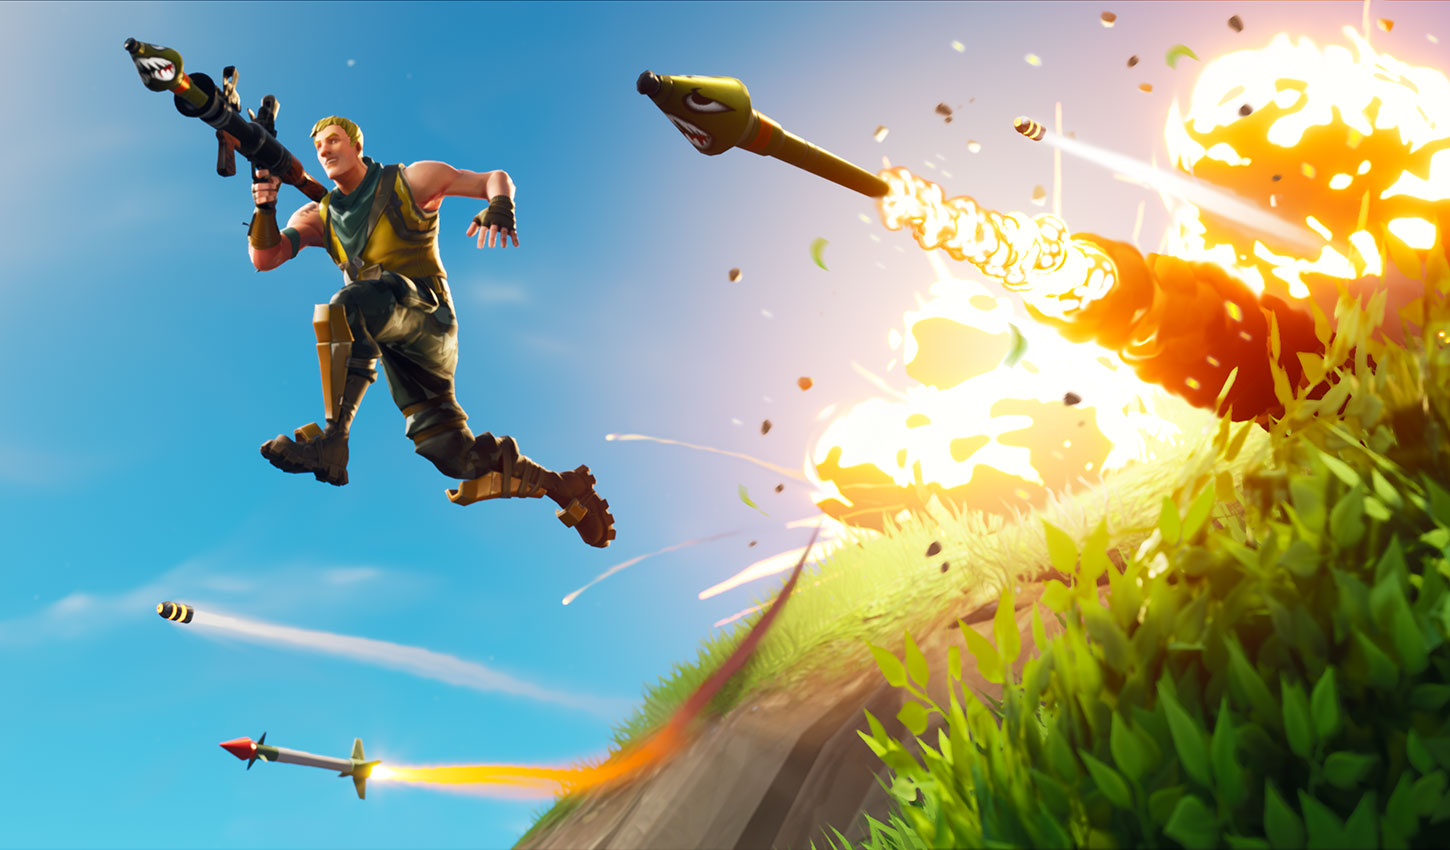 Fortnite Mobile $100 Million Hero Image